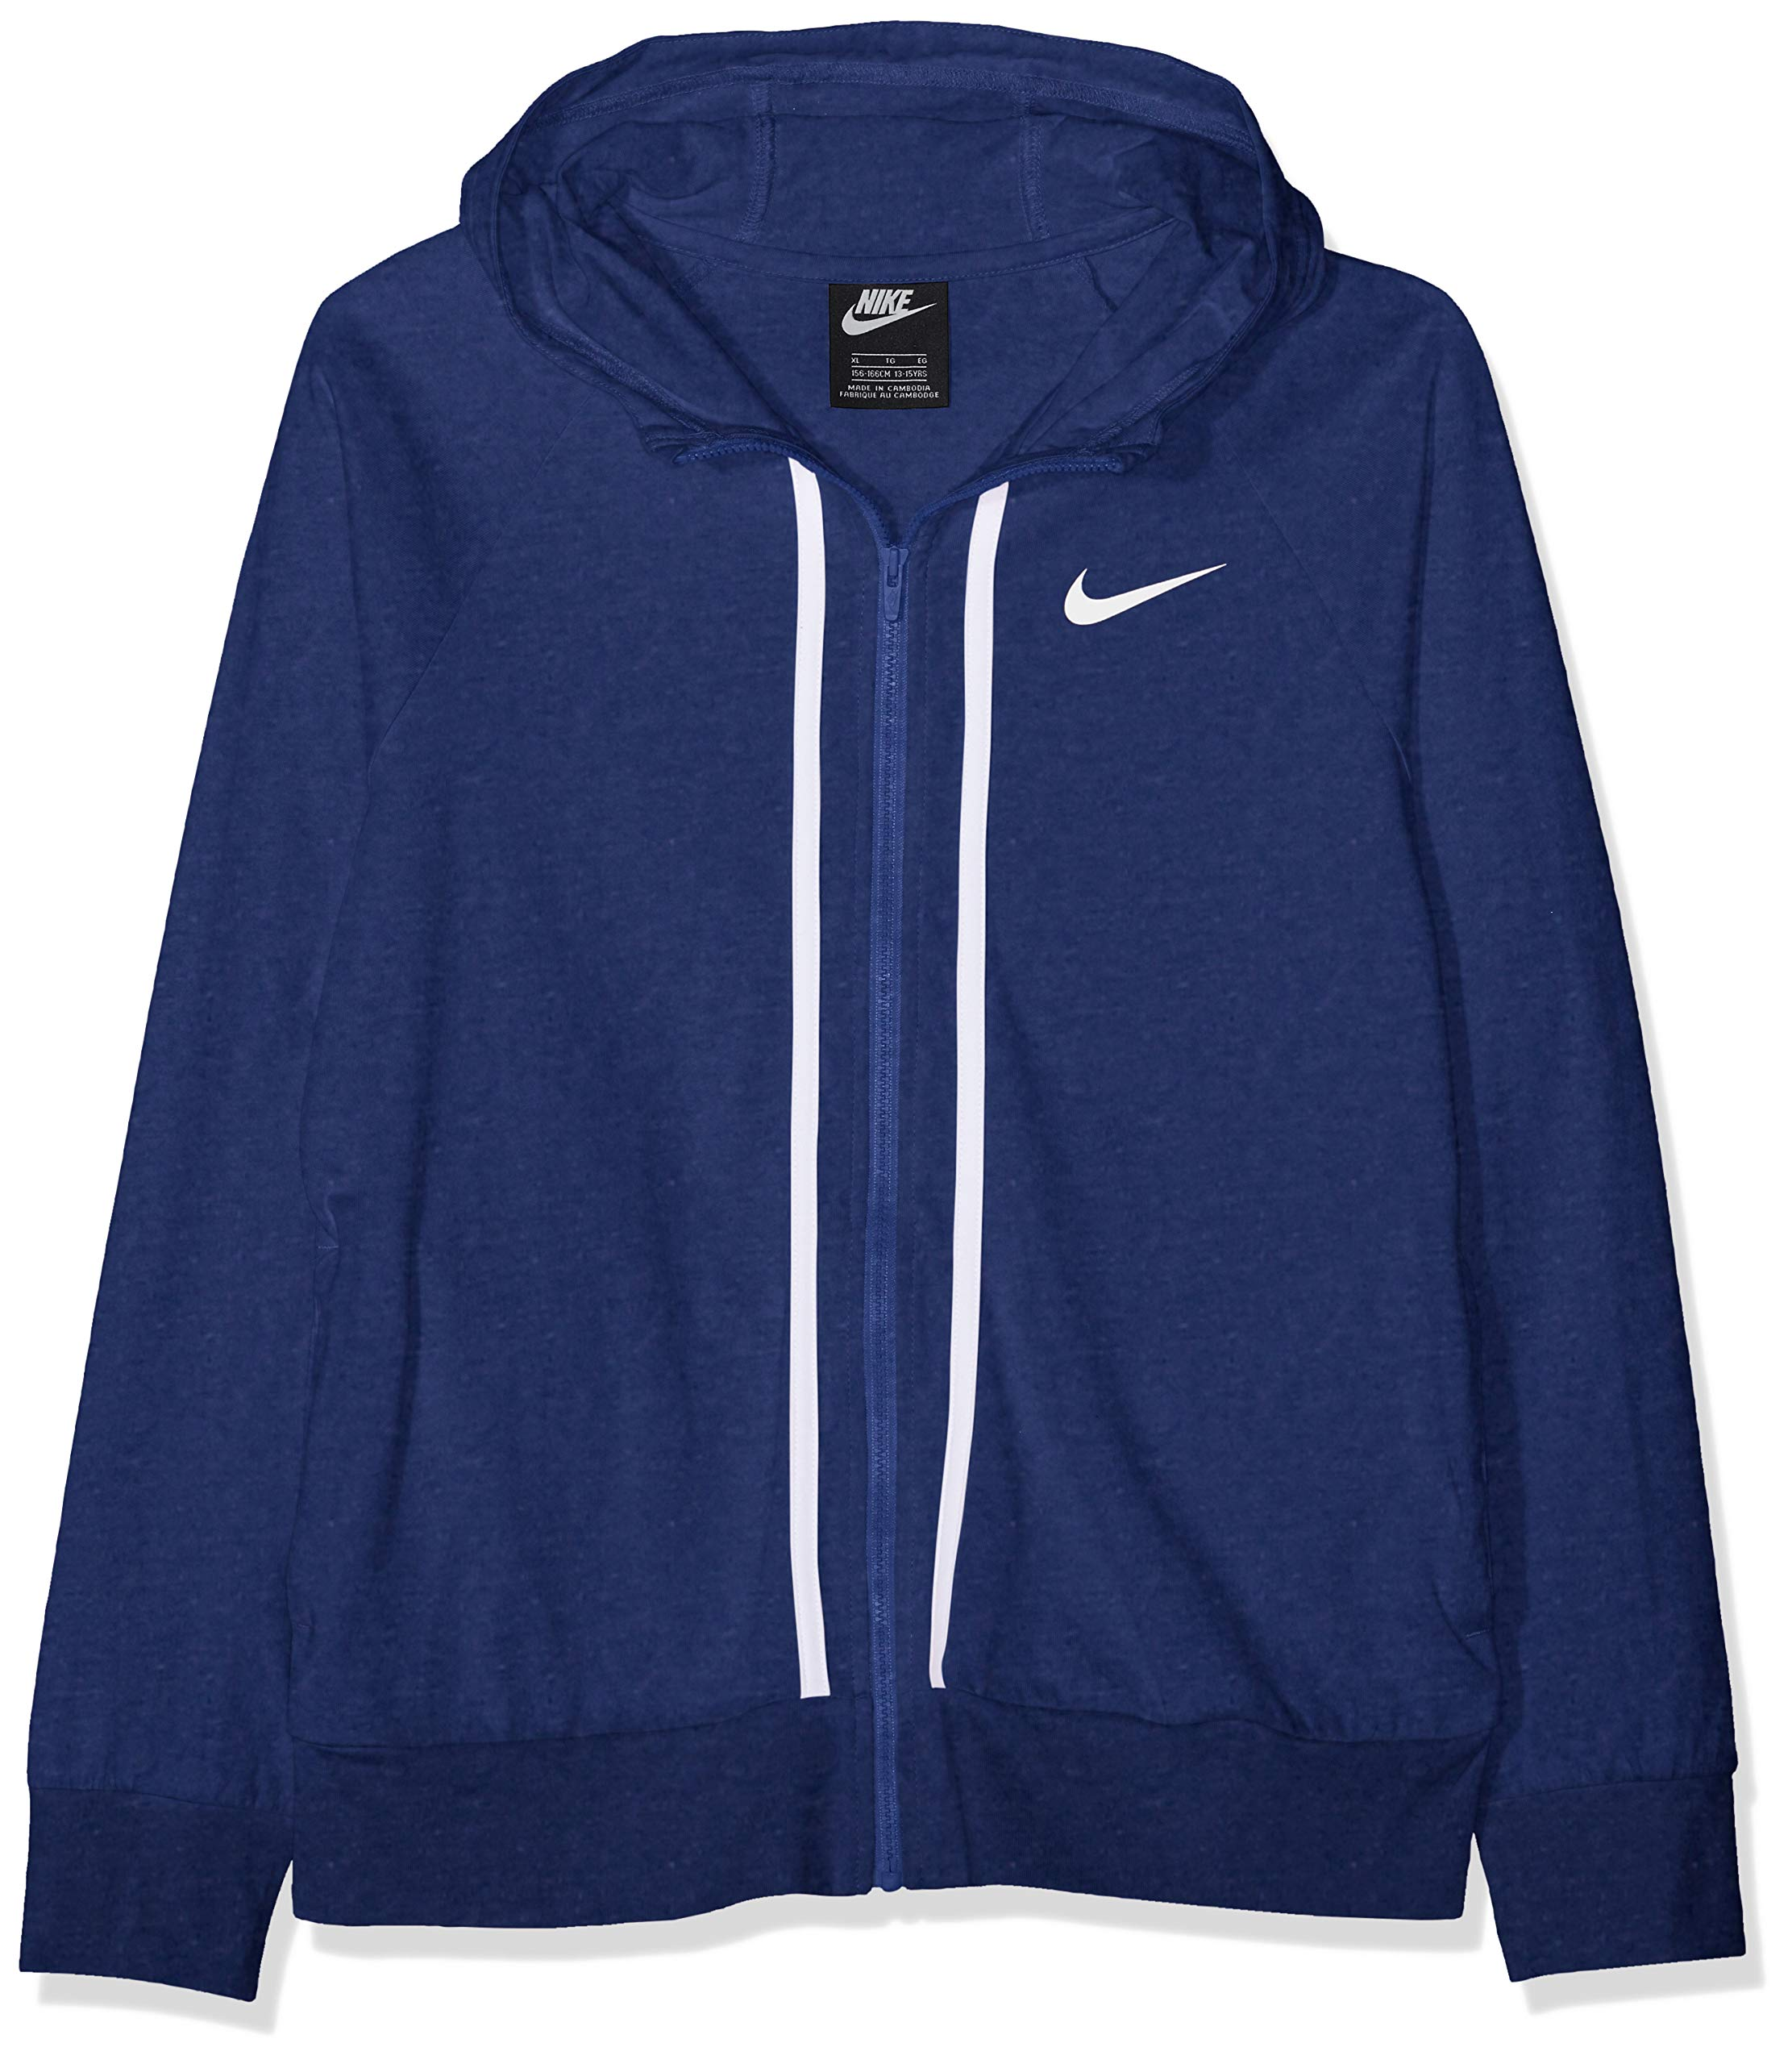 NIKE Girl's NSW Full-Zip Jersey, Indigo Force/Heather/White, Large by Nike